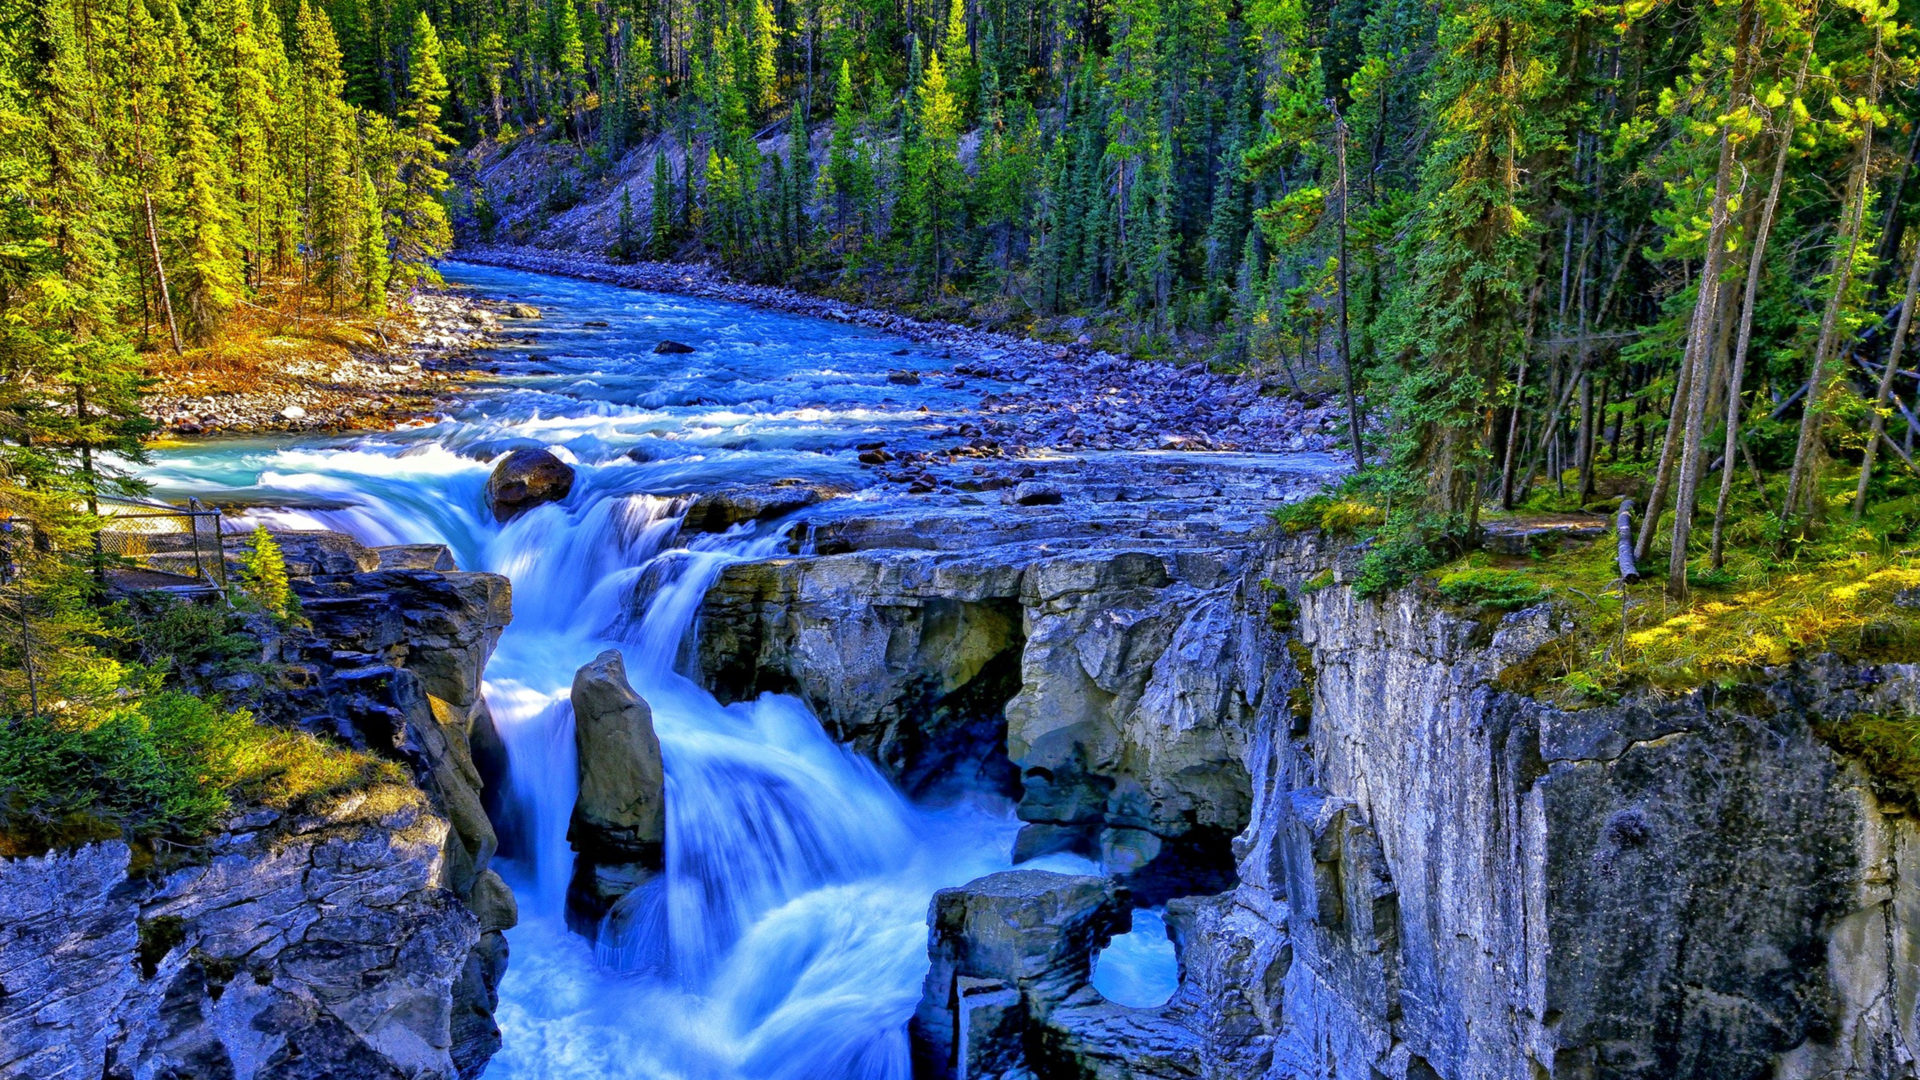 Lock Screen Wallpaper For Iphone 5 Waterfall River Rocks Forest Trees Rivers 323048